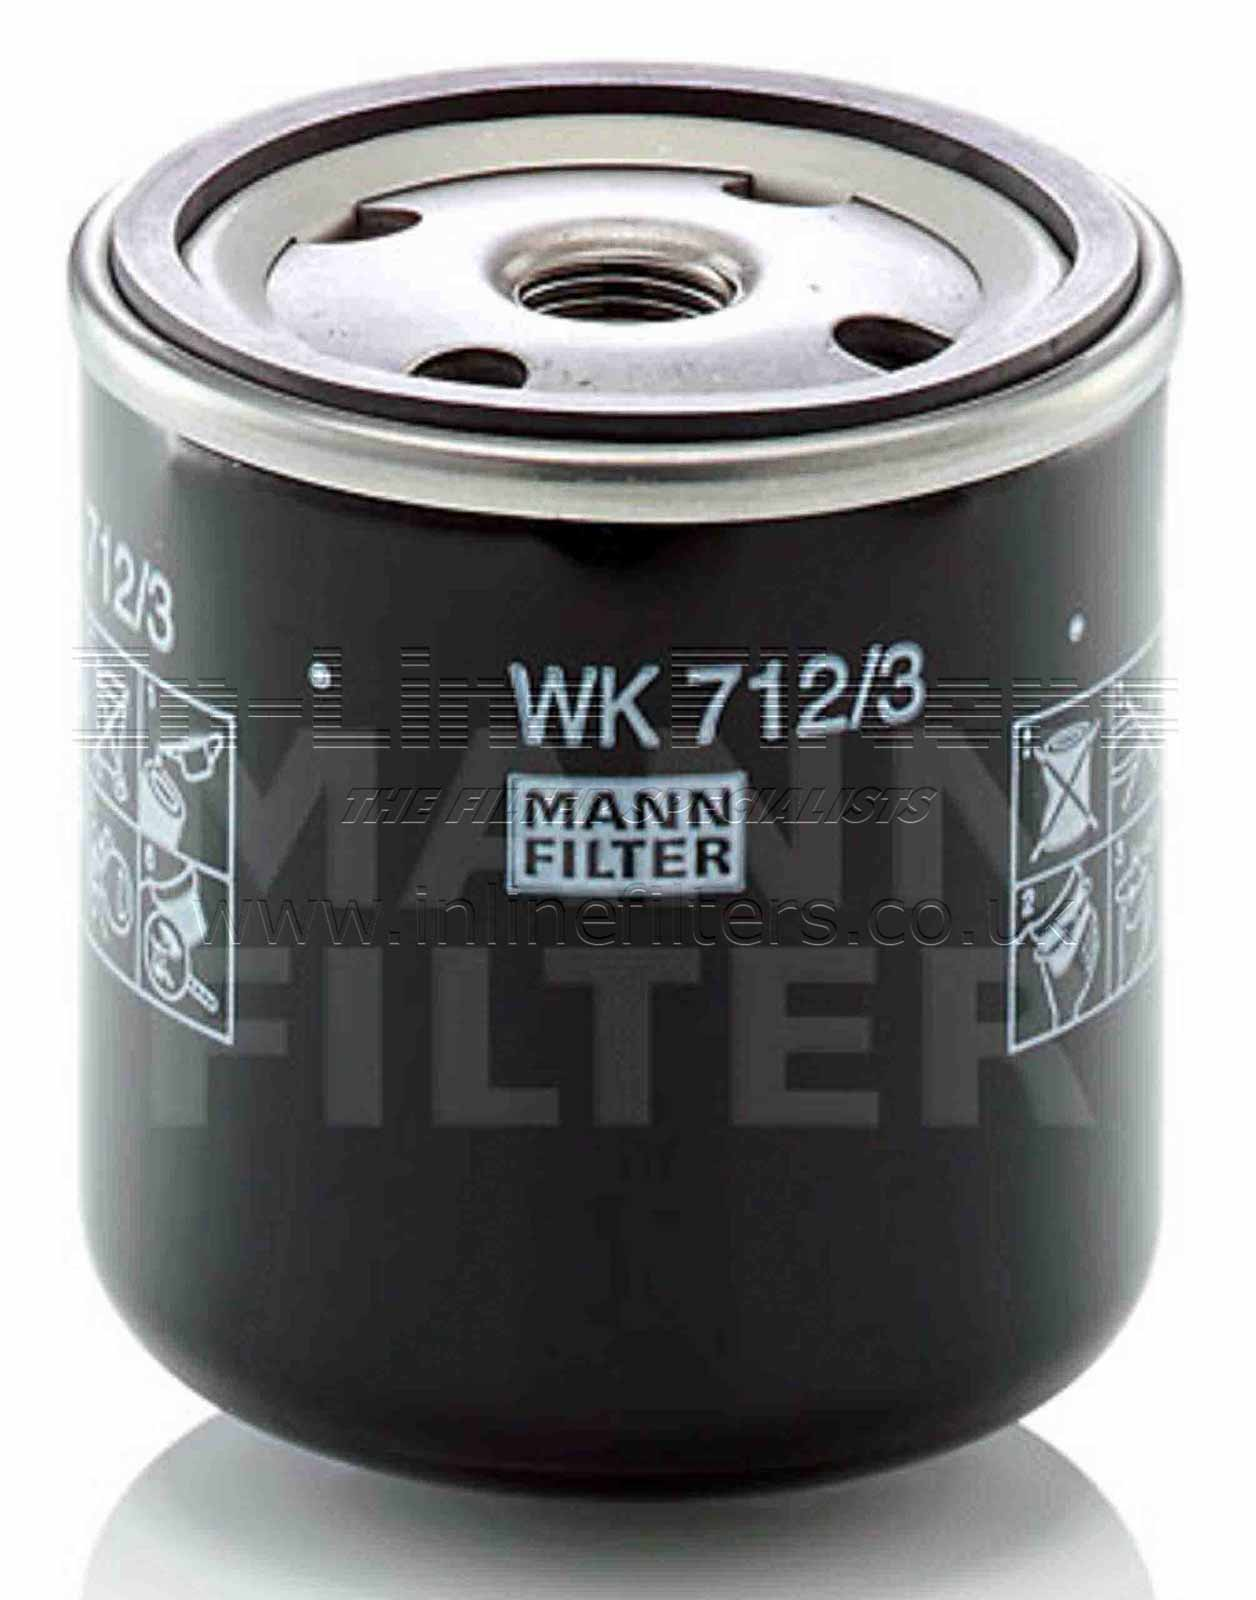 FMH-WK712-3 FILTER-Fuel(Mann WK712/3) - Click Image to Close